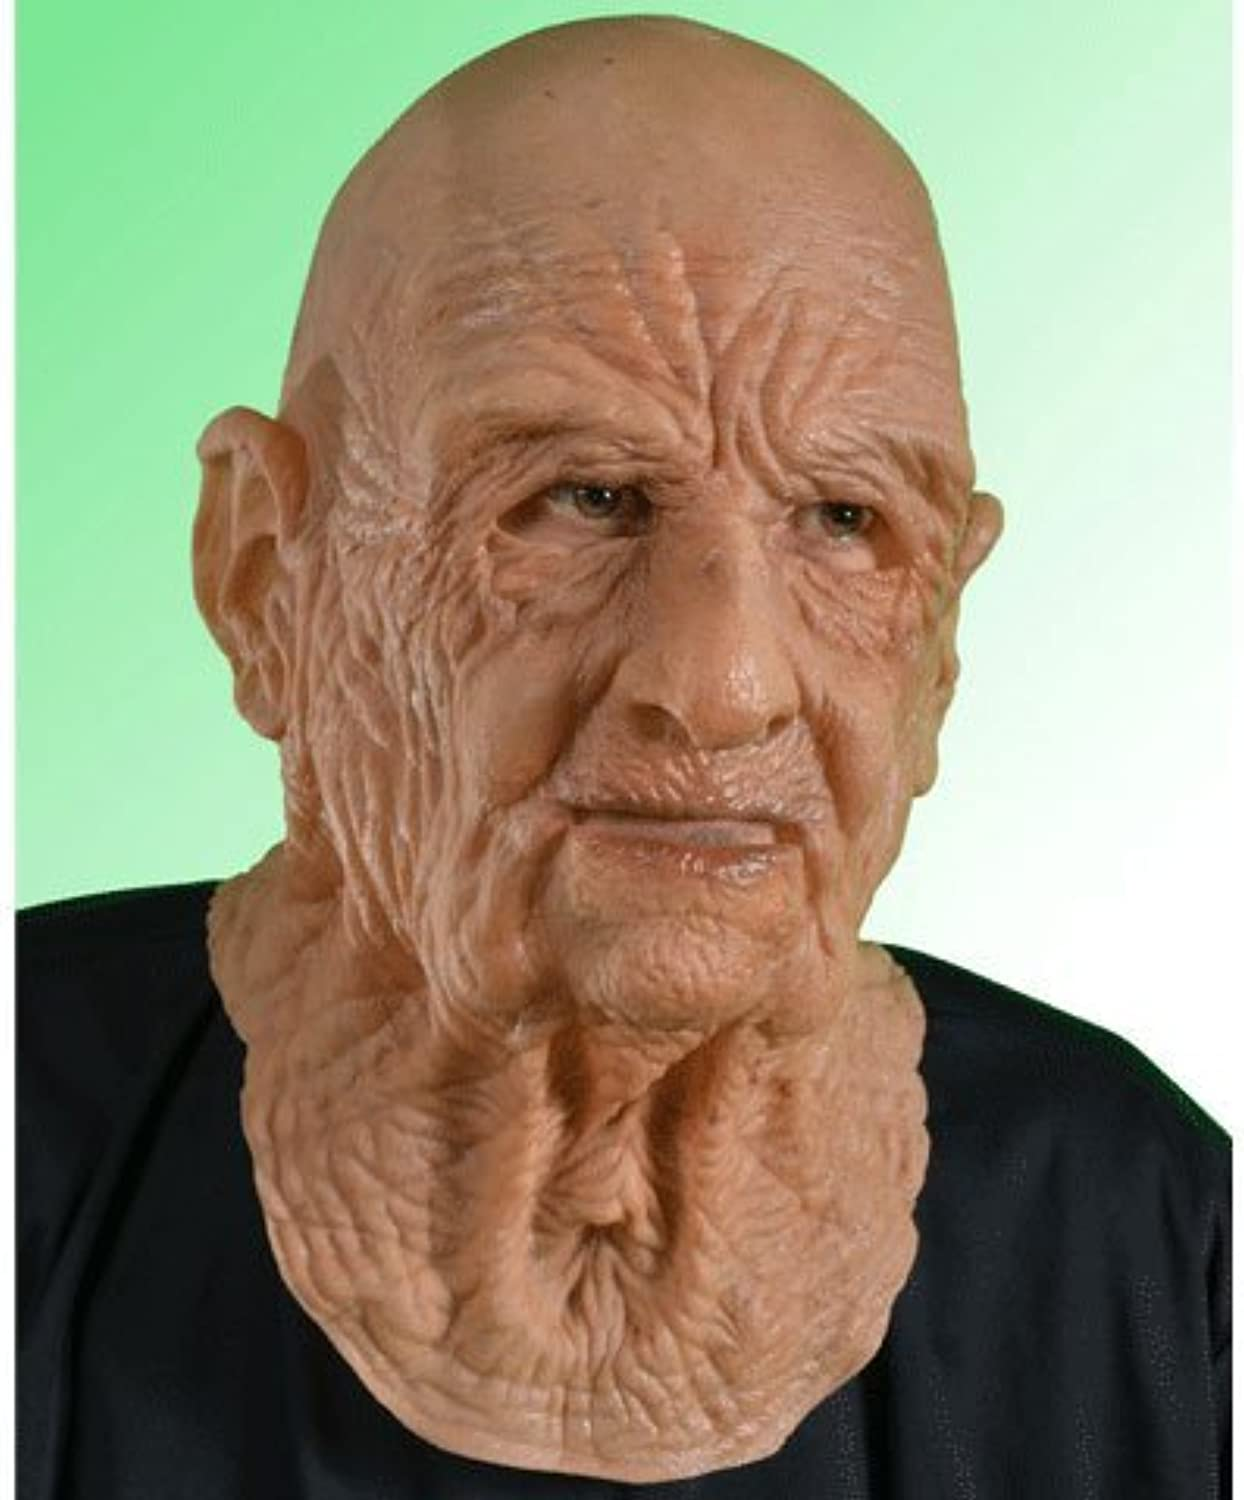 Dead On Arrival (DOA) Supersoft Old Man Mask by Zagone Studios